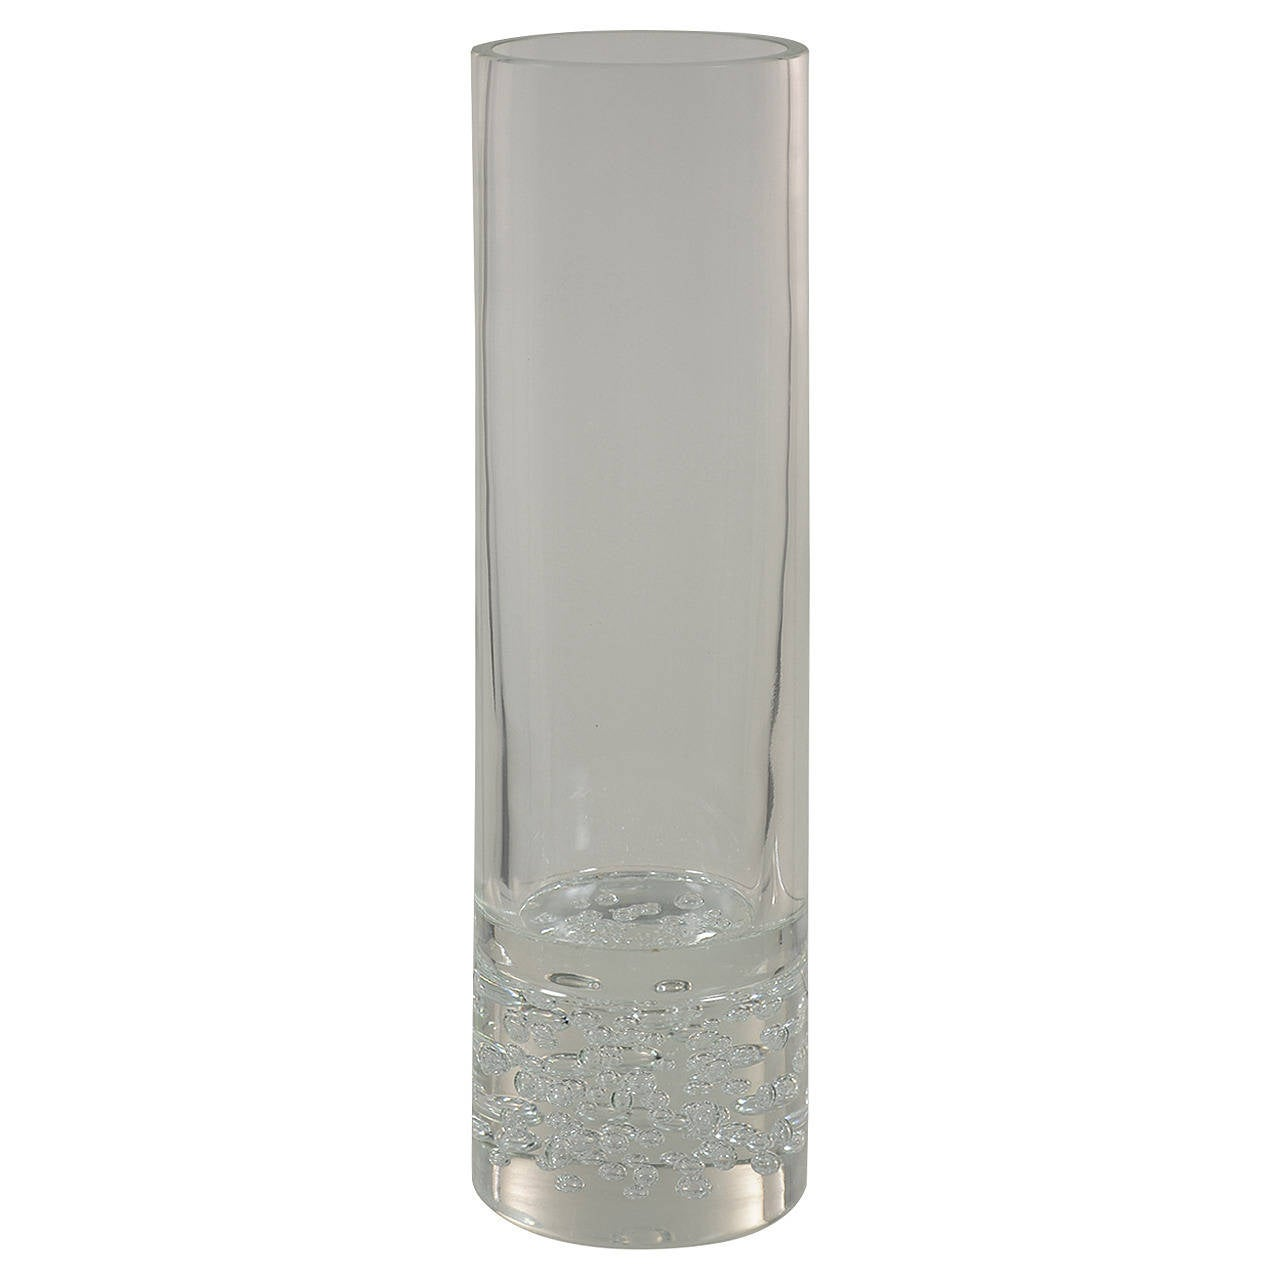 Large Clear Vase Designed by Livio Seguso, Produced by Seguso A.V